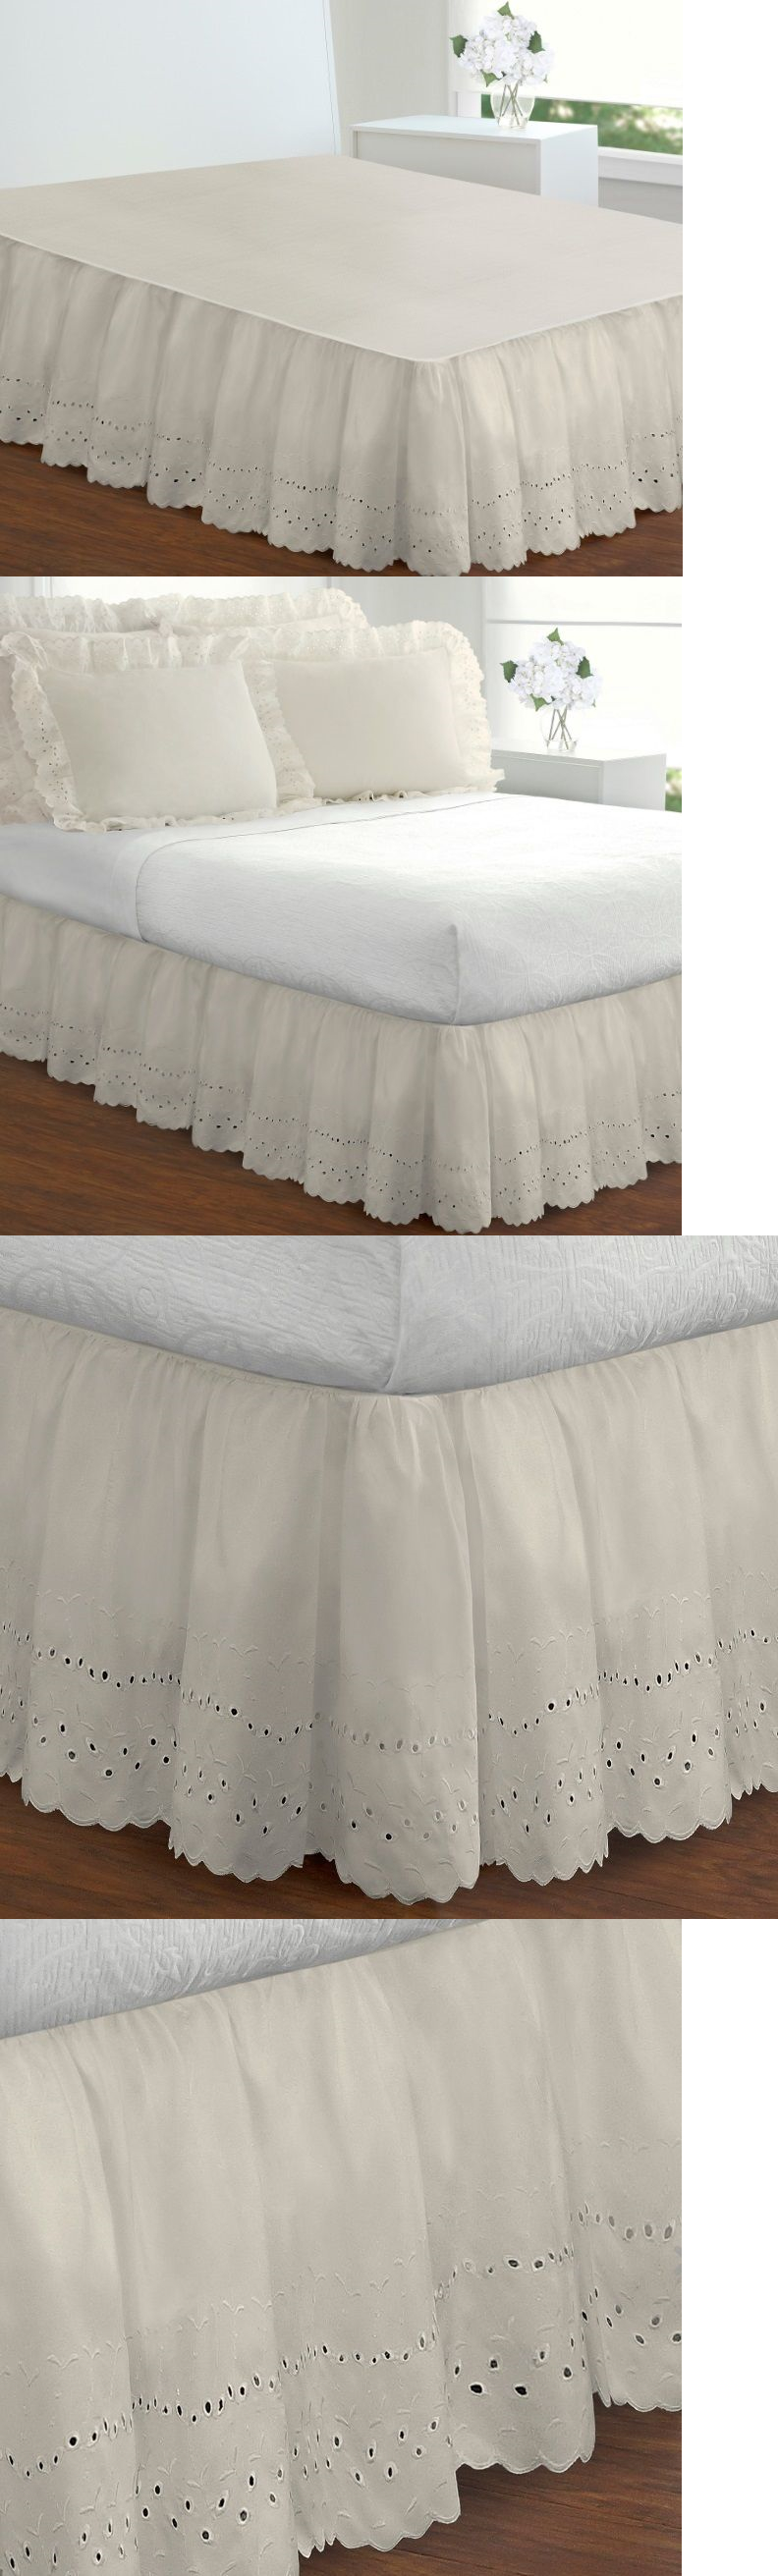 king brown tempting decor eyelet complete adjustable homes and walmart inspire skirt interesting as bed home gardens bedskirt skirtstempting size com to inspiration your bedskirts skirts better